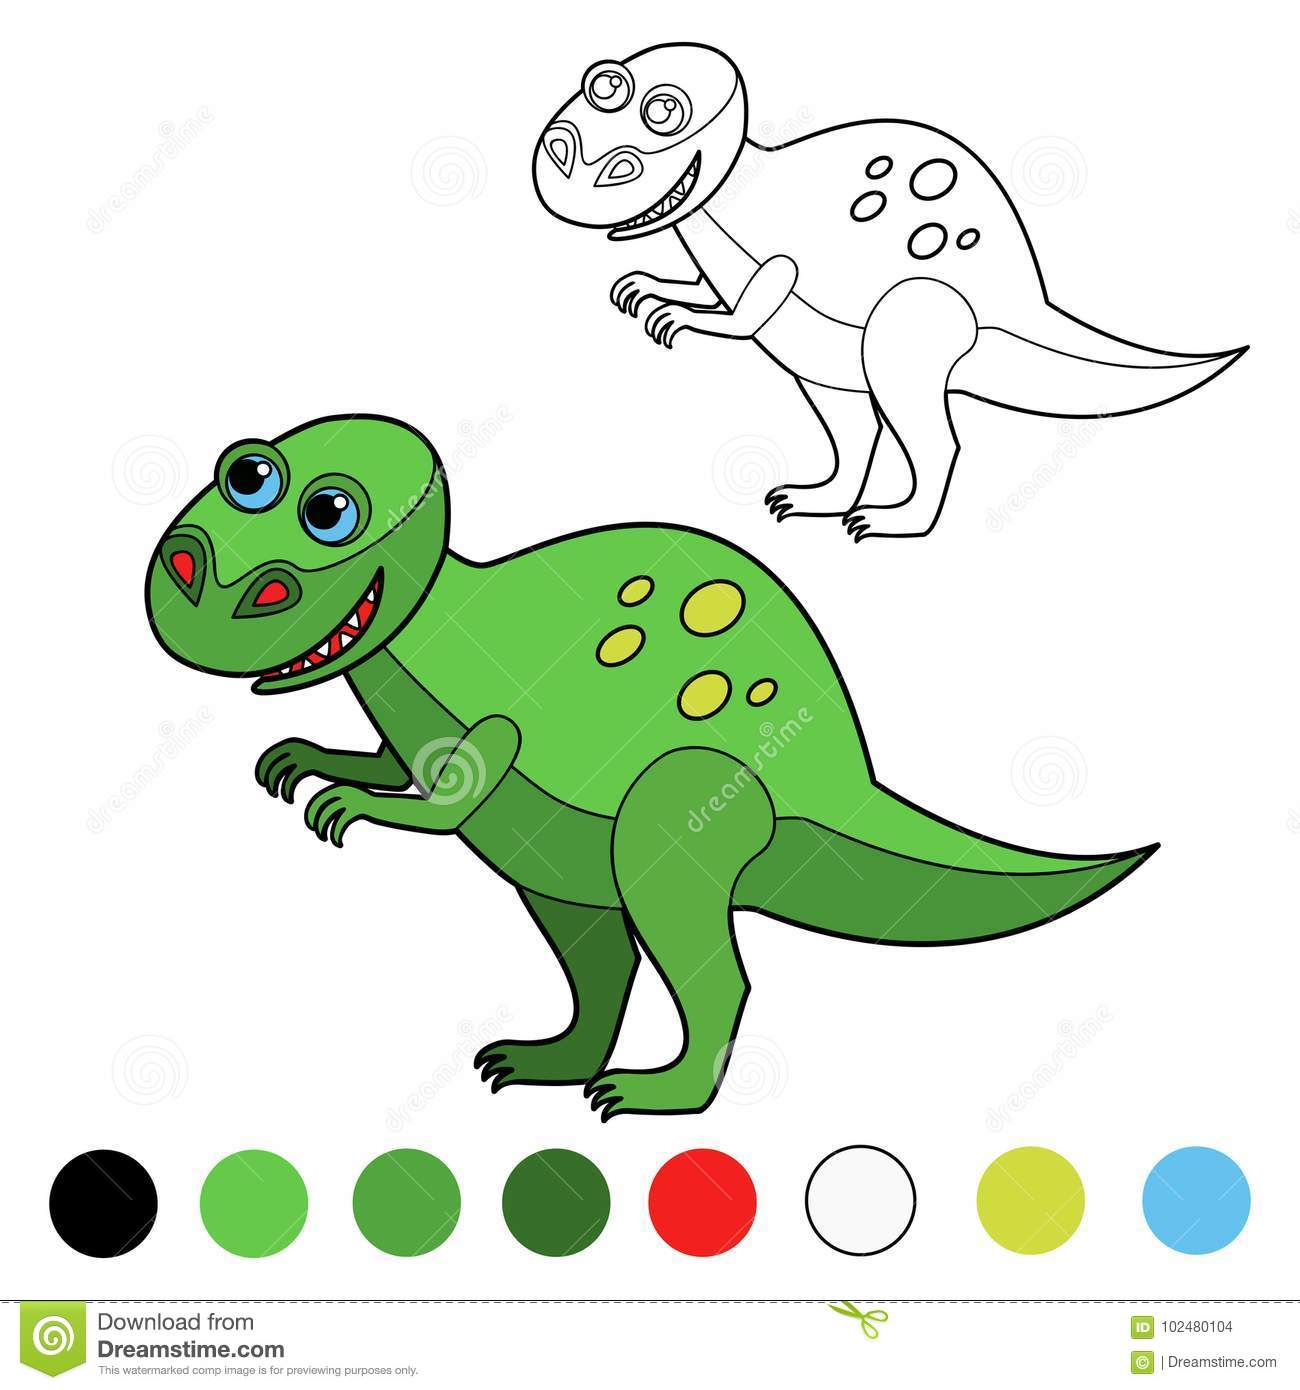 Dinosaur coloring pages stock illustration. Illustration of ...